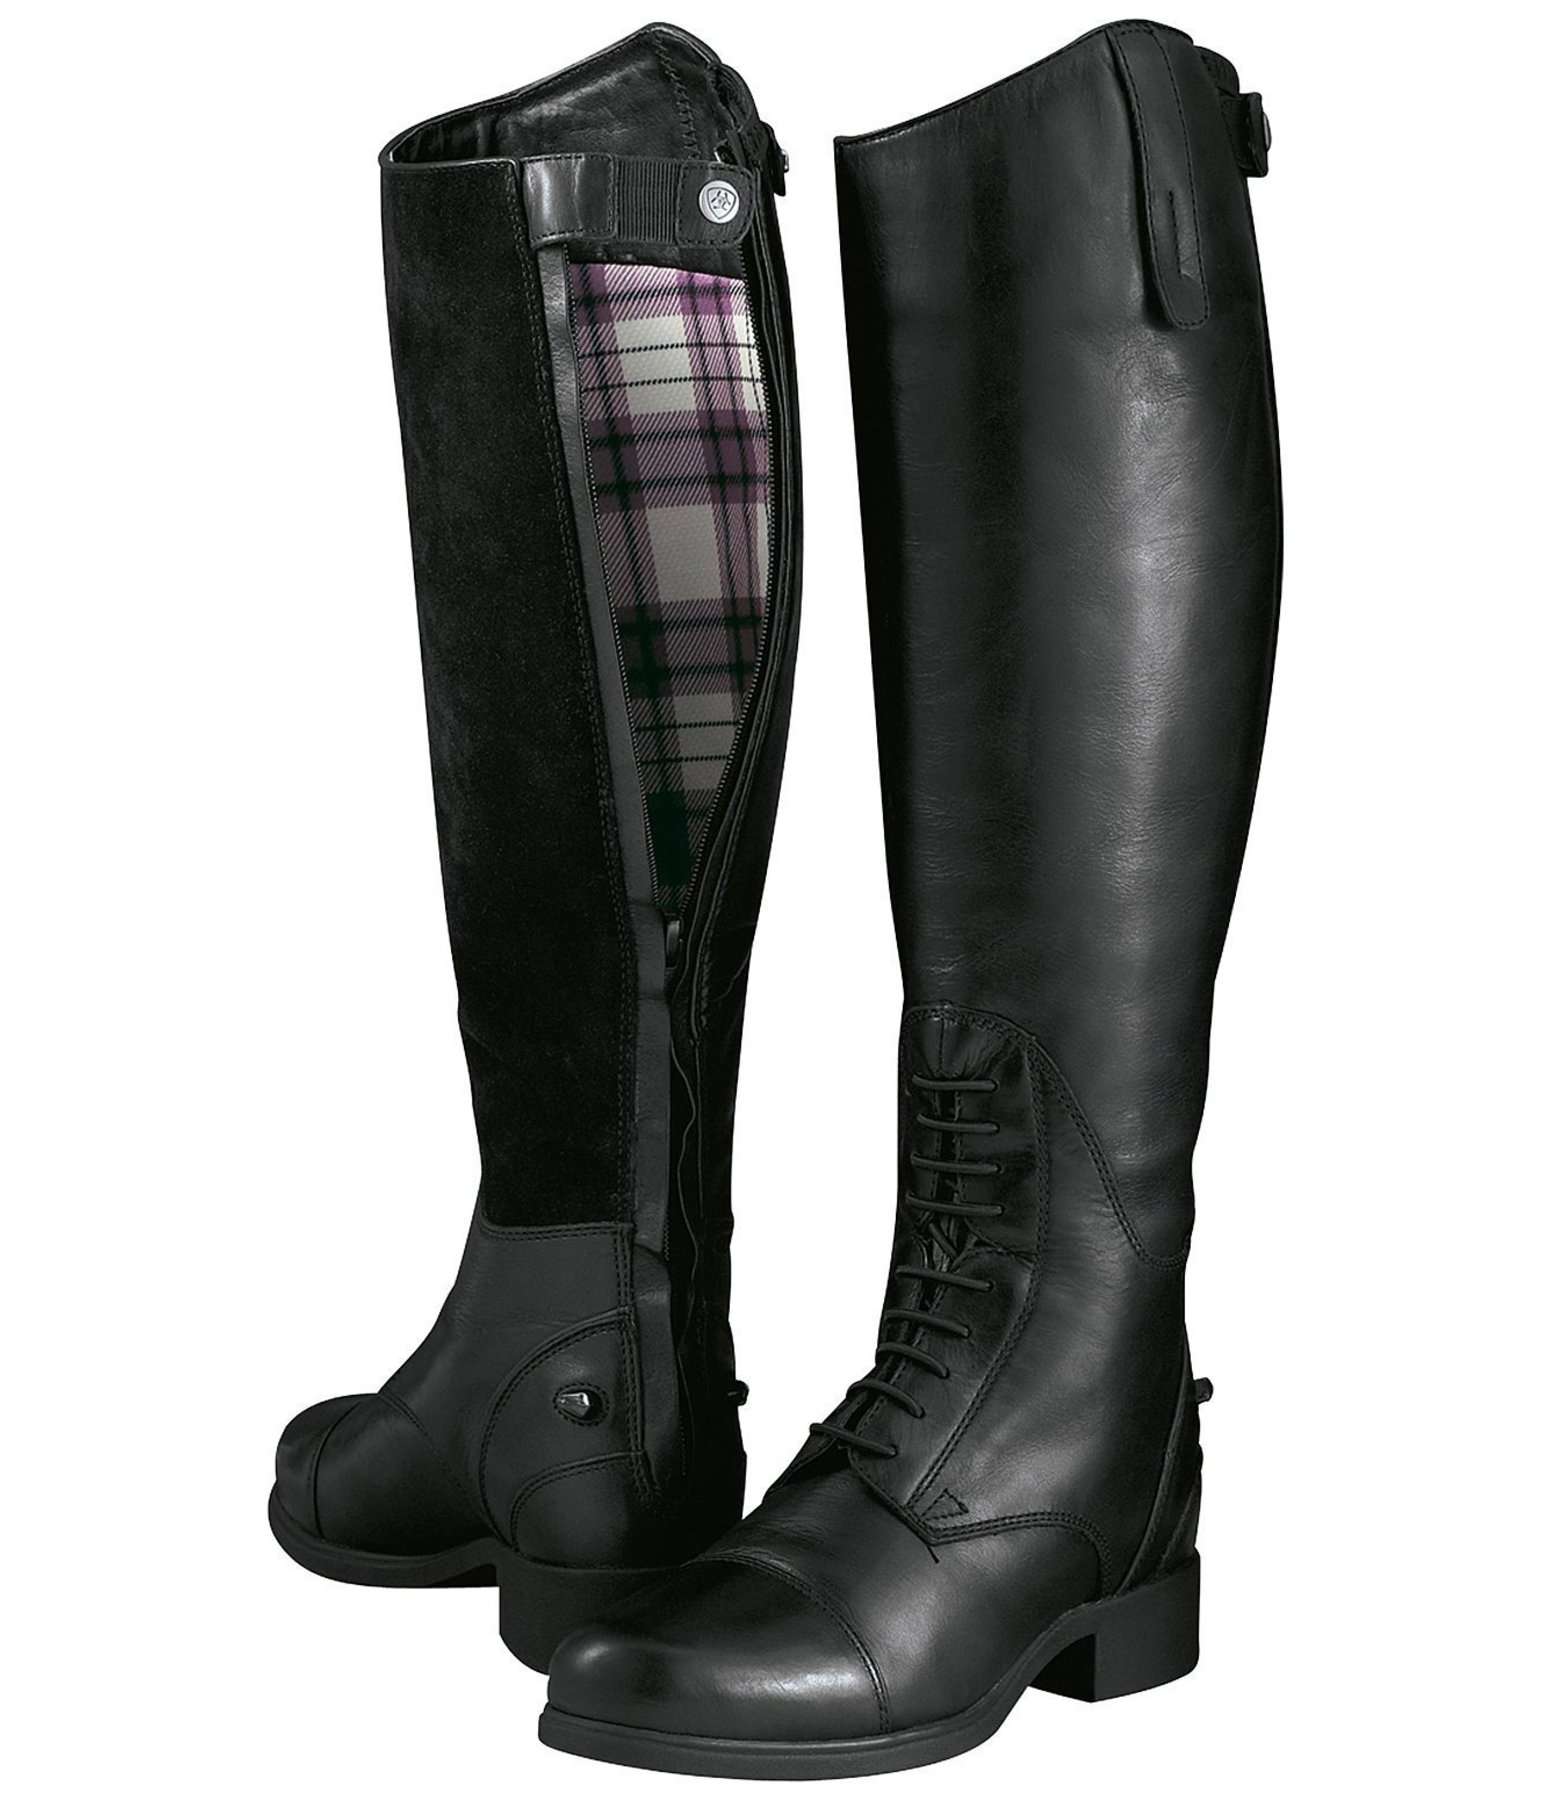 Ariat Insulated Riding Boots | Fashion Boots